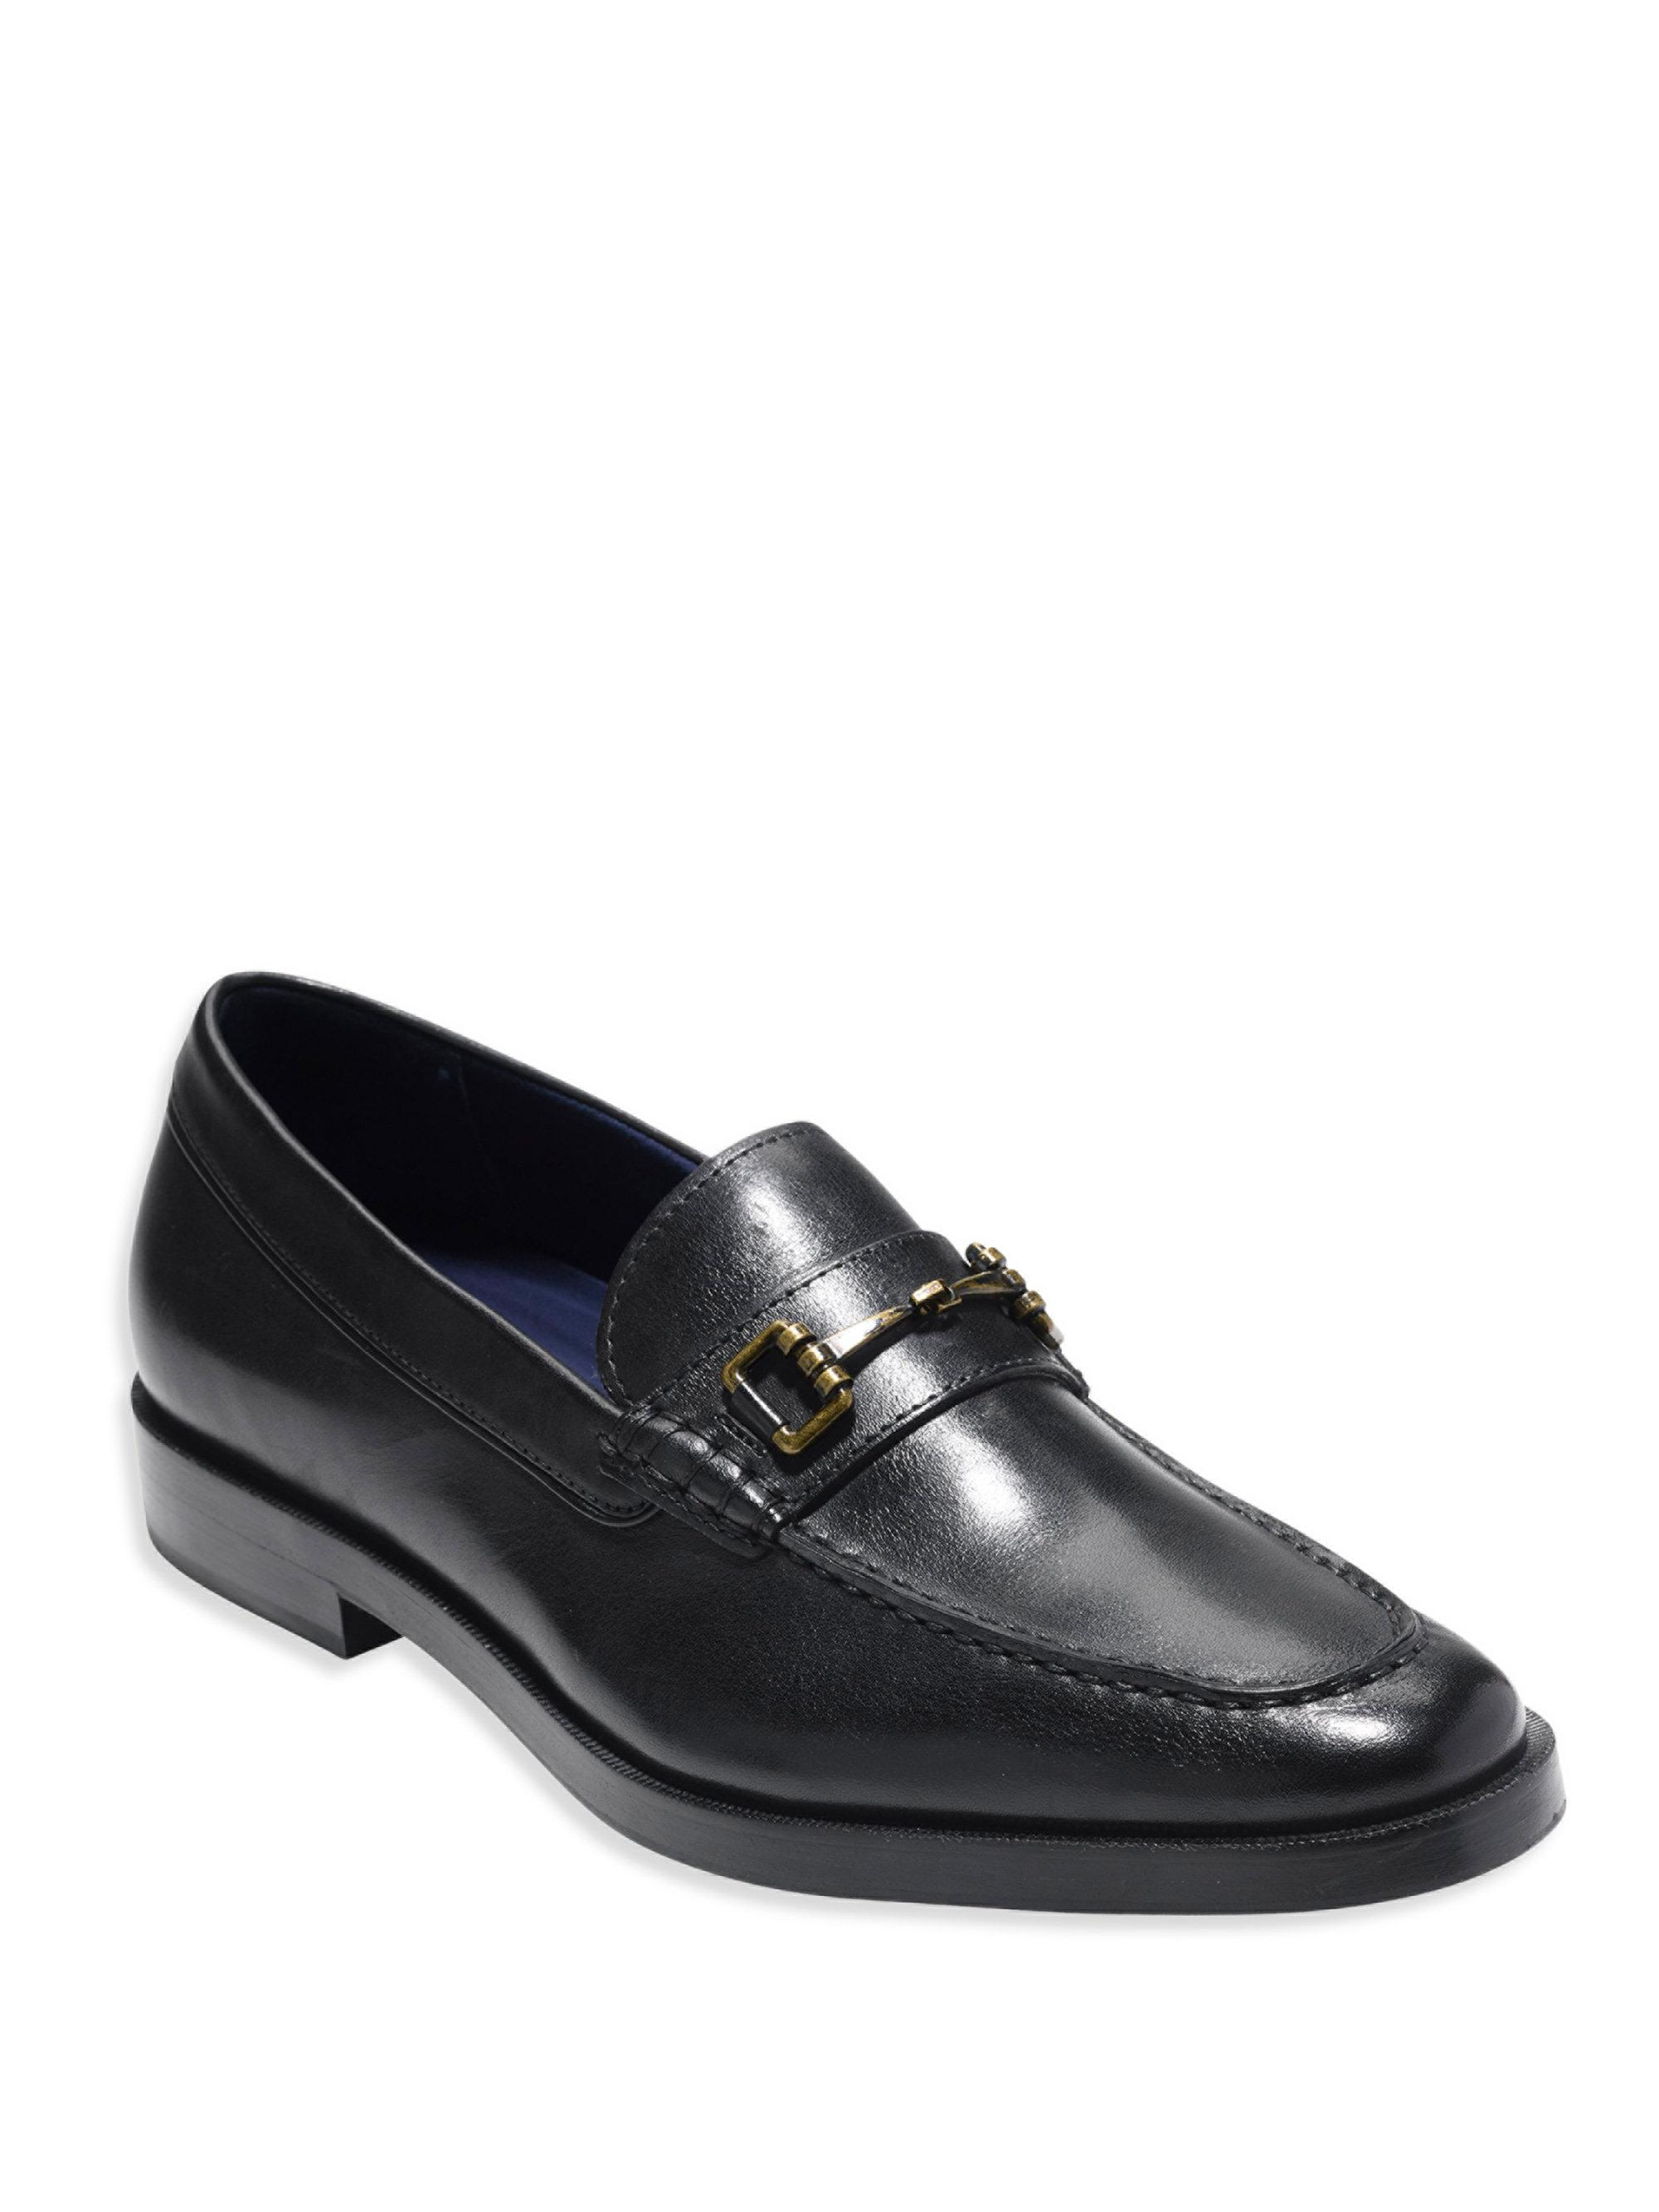 b557d5e578d Cole Haan Dress Revolution Hamilton Grand Leather Bit Loafers in ...